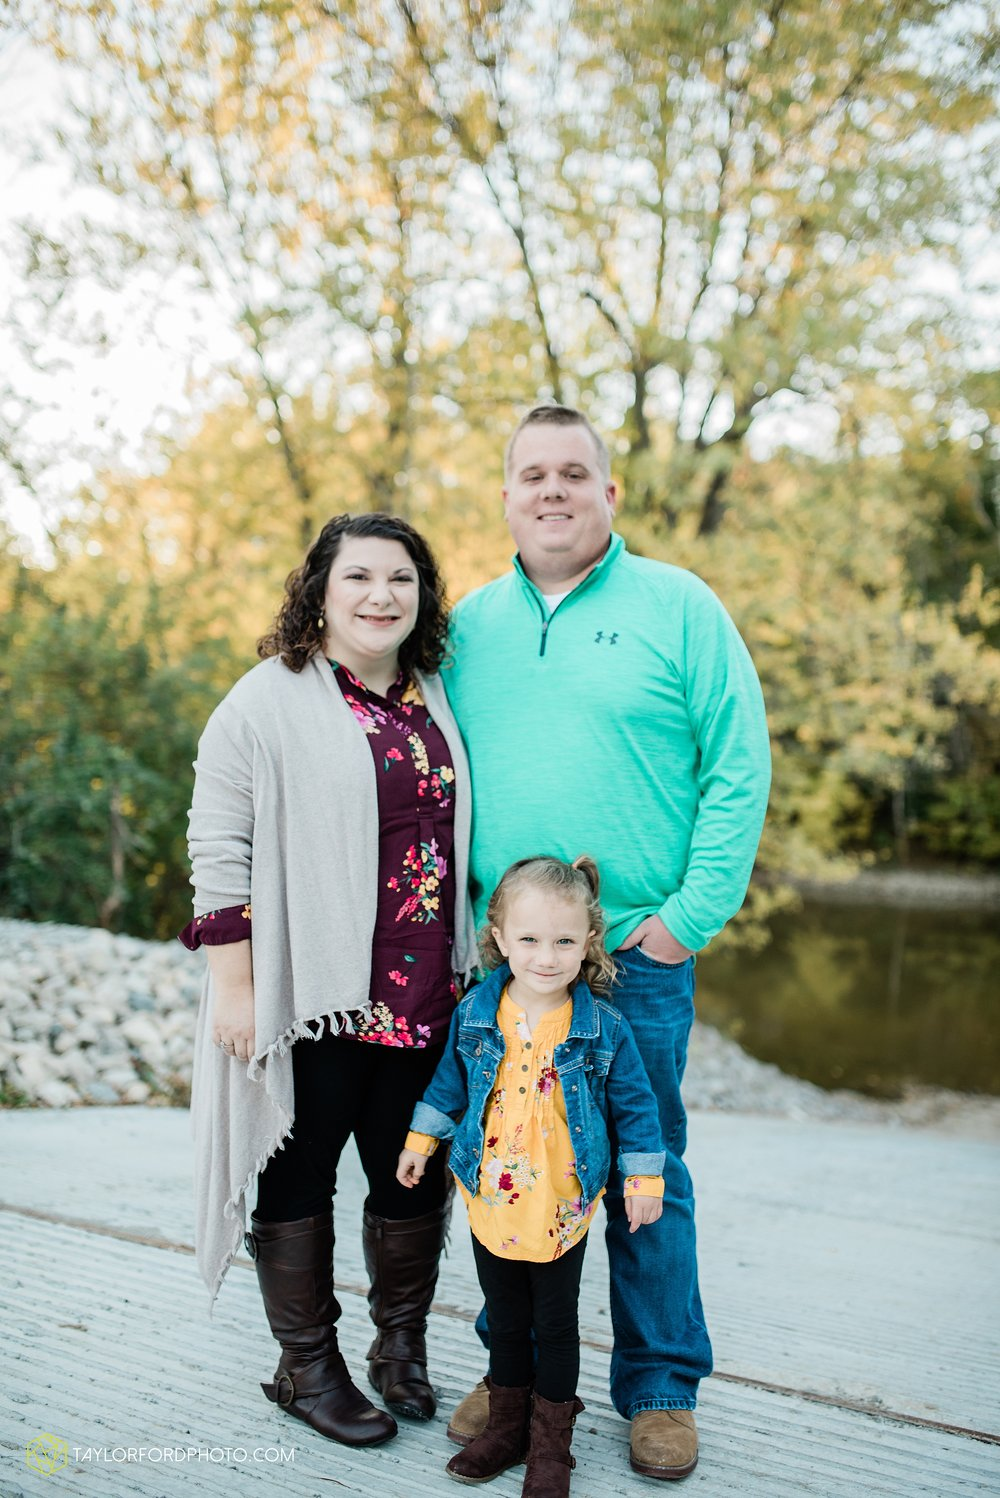 hogan-northeast-fort-wayne-indiana-family-fall-photographer-taylor-ford-photography_1370.jpg